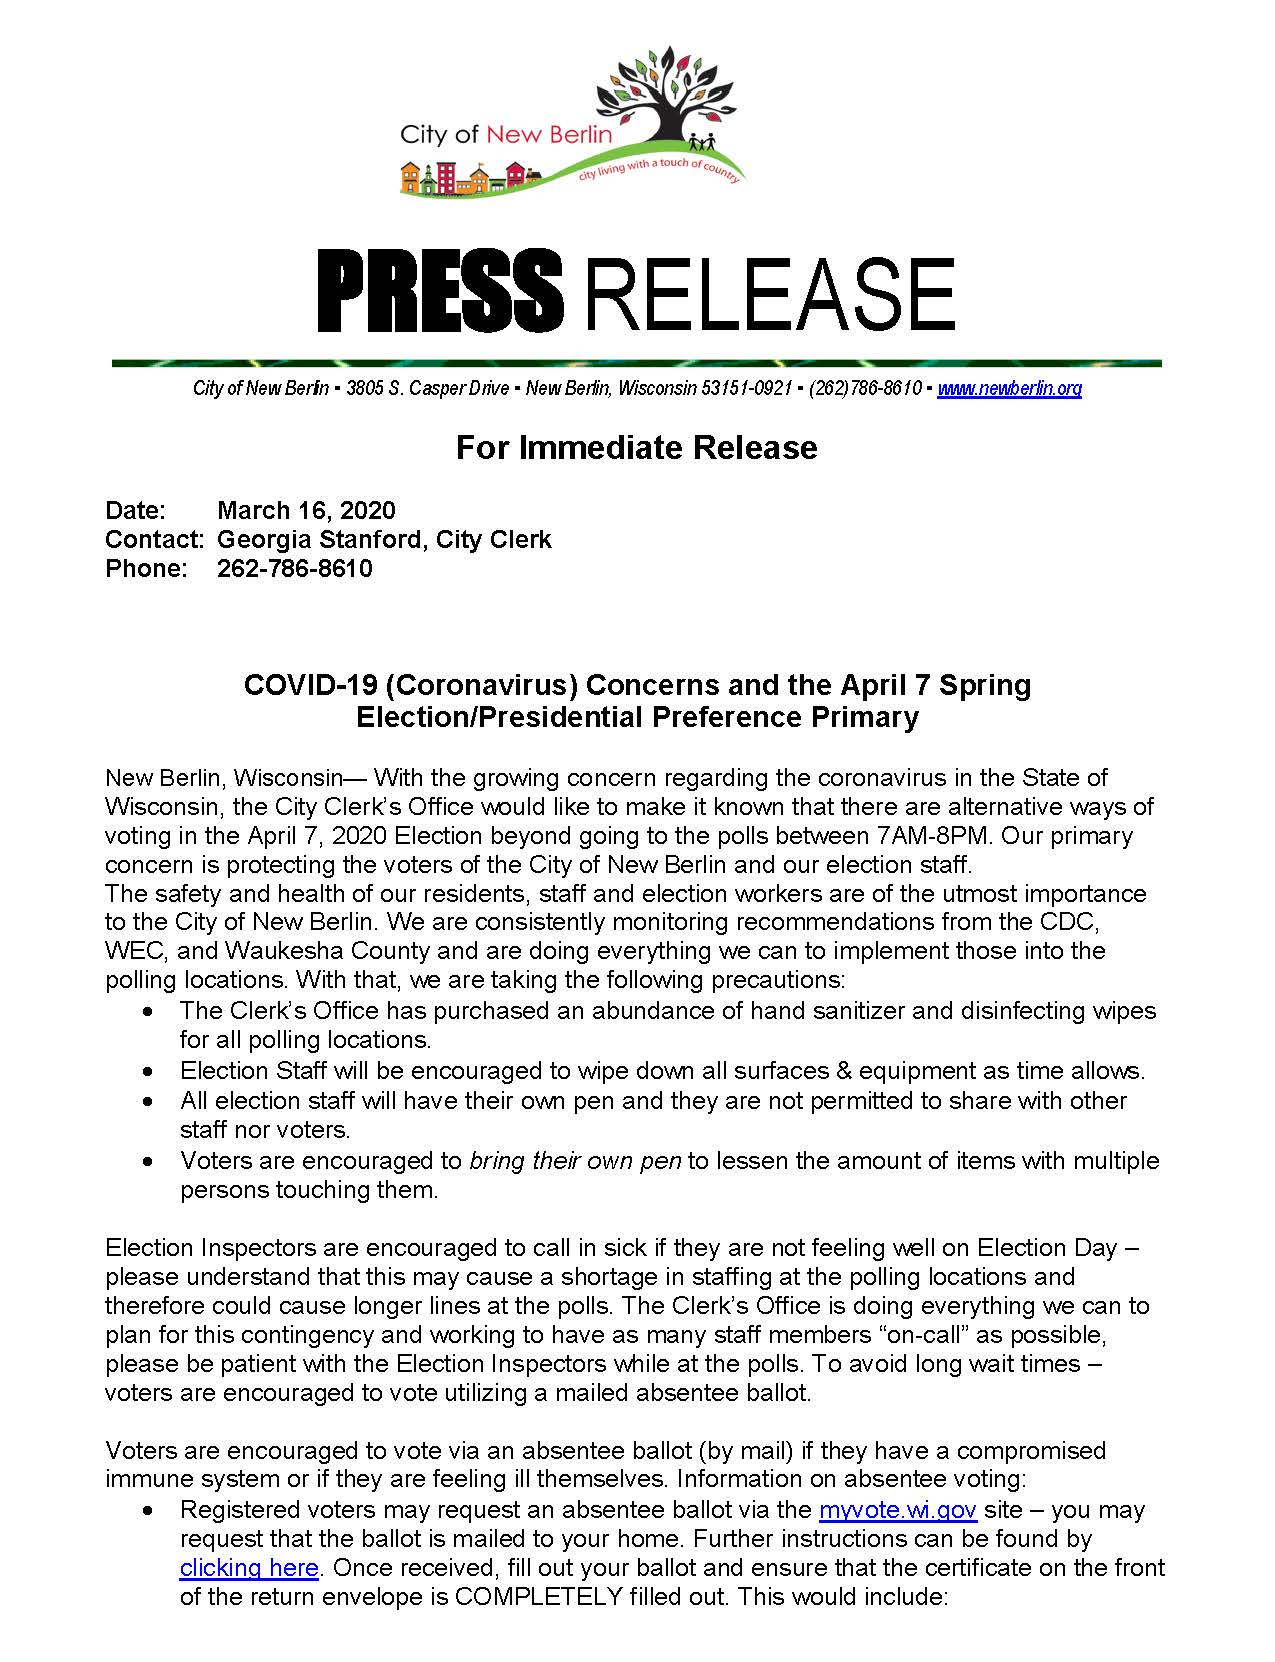 Press Release - Corona Virus  Election Day Updated 03162020_Page_1